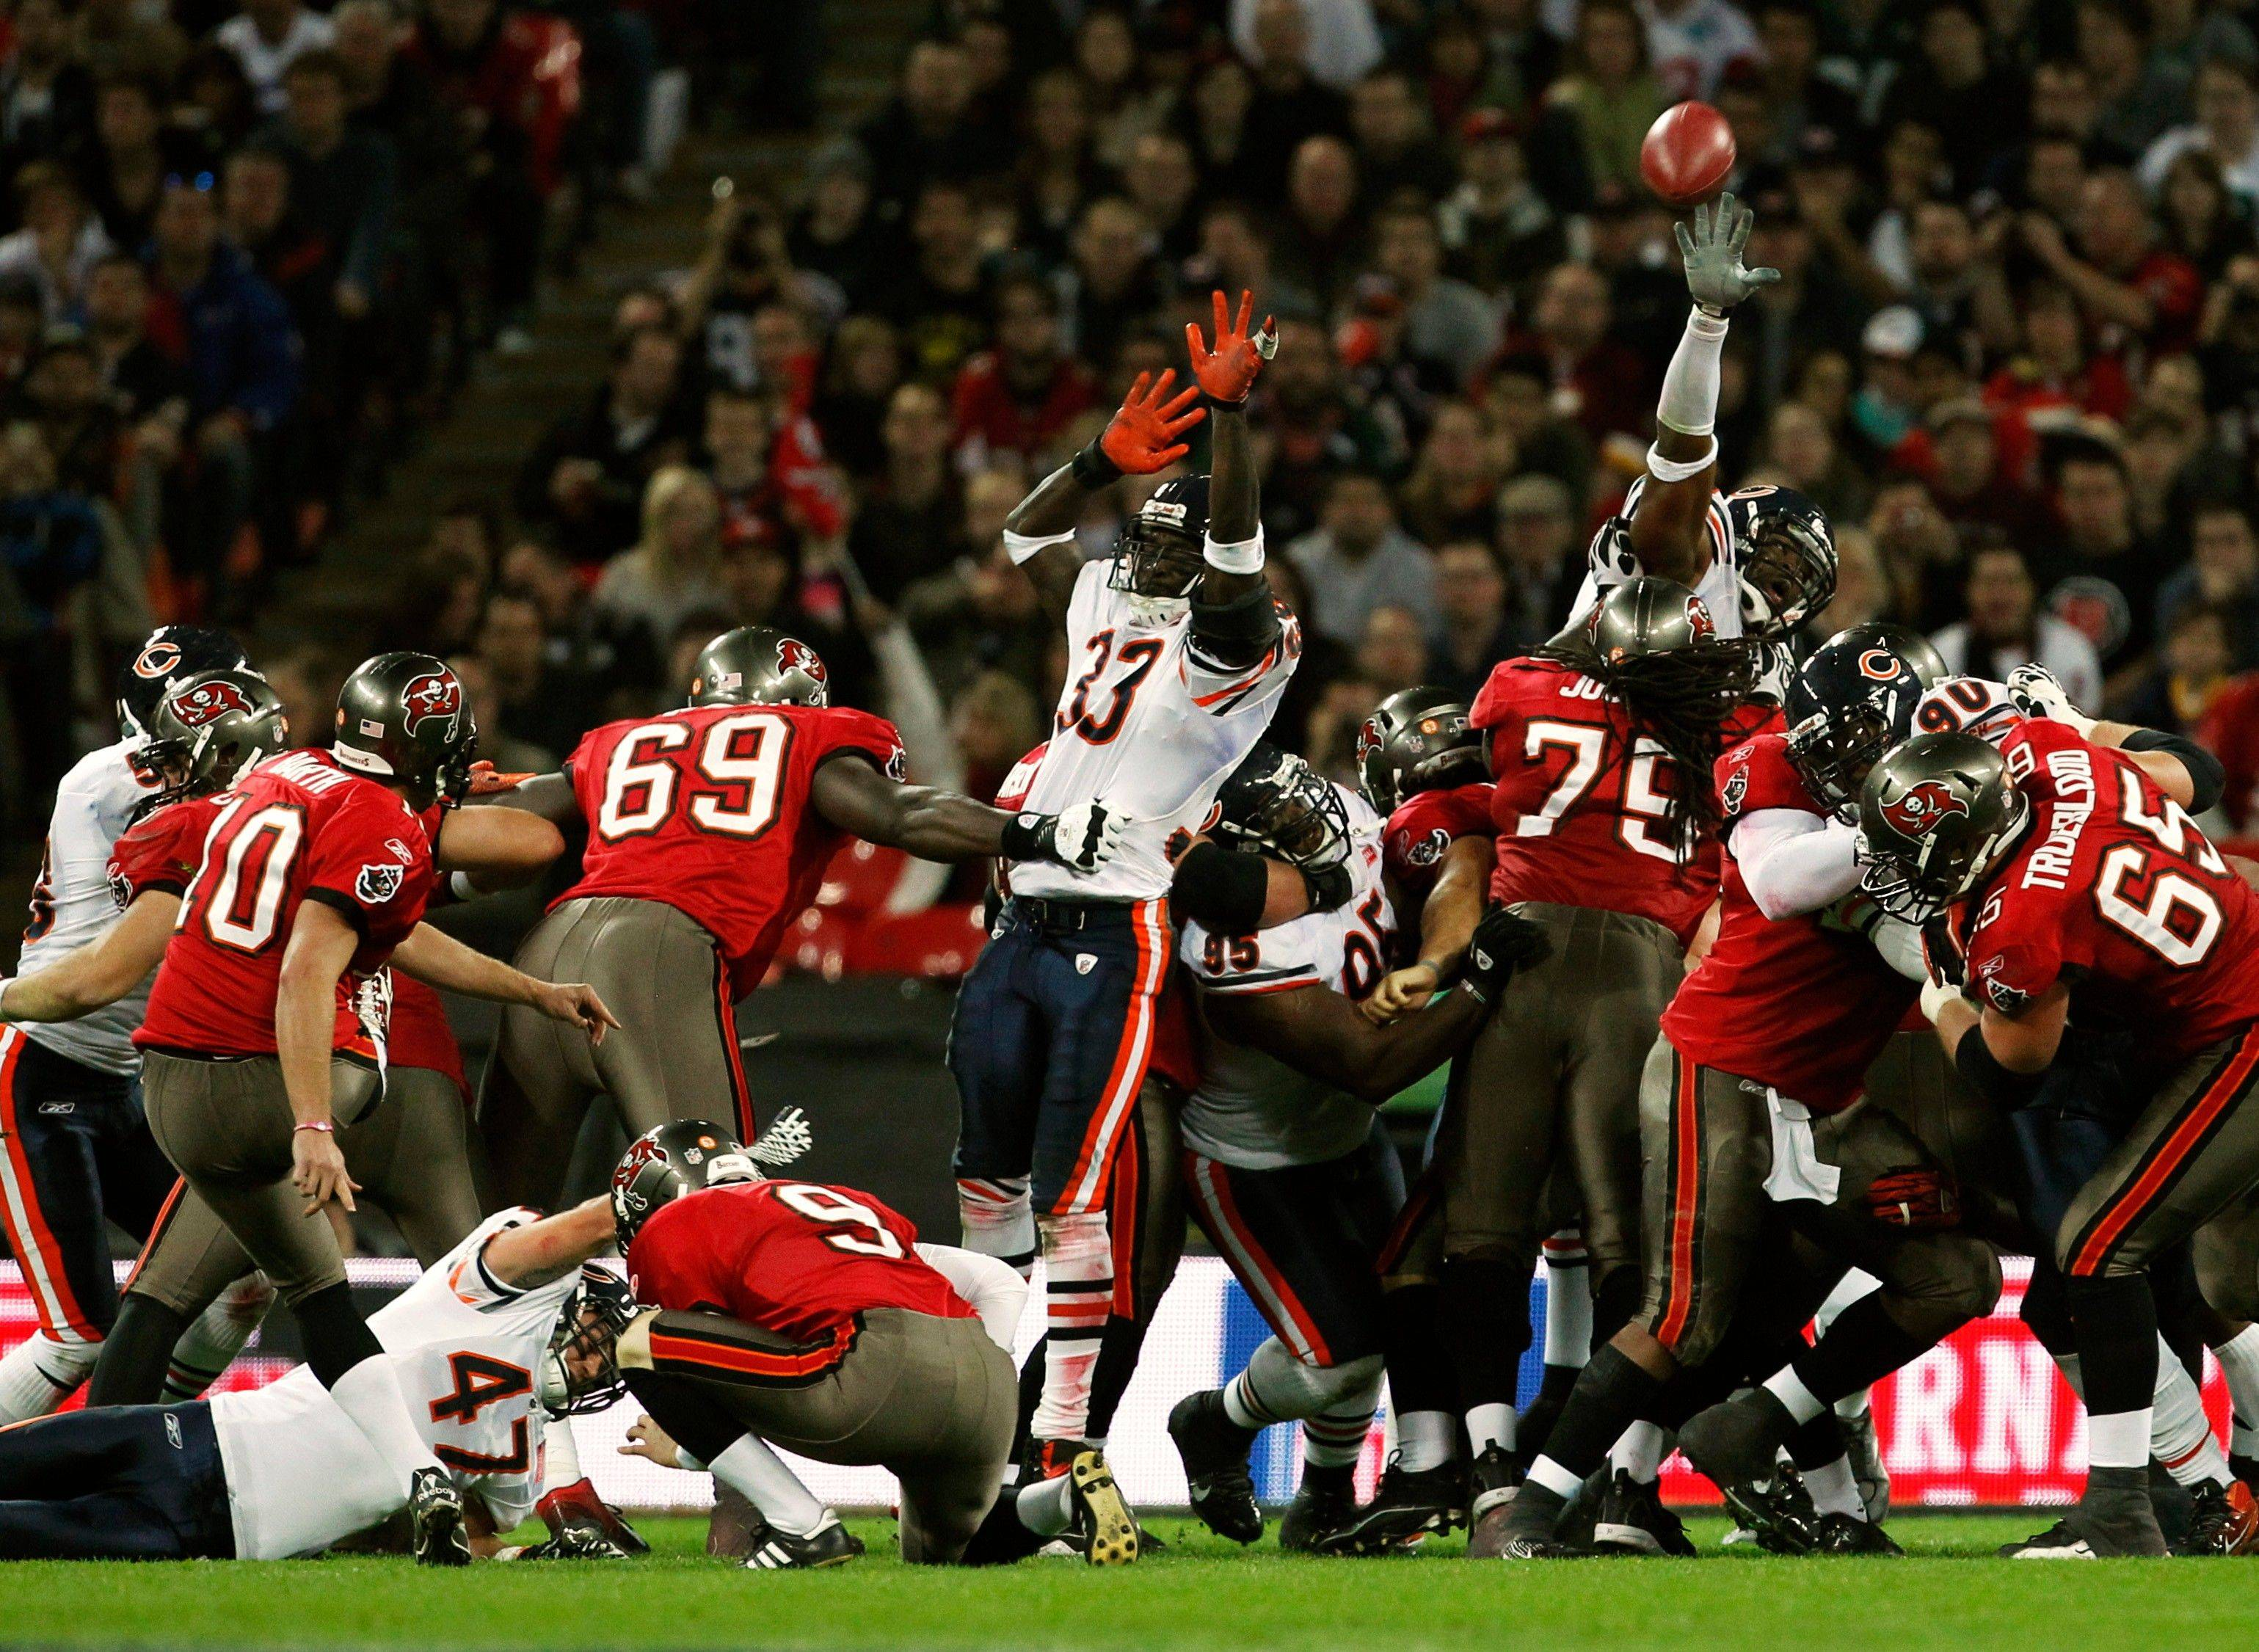 Tampa Bay Buccaneers kicker Connor Barth kicks a 33-yard field goal during the first half.